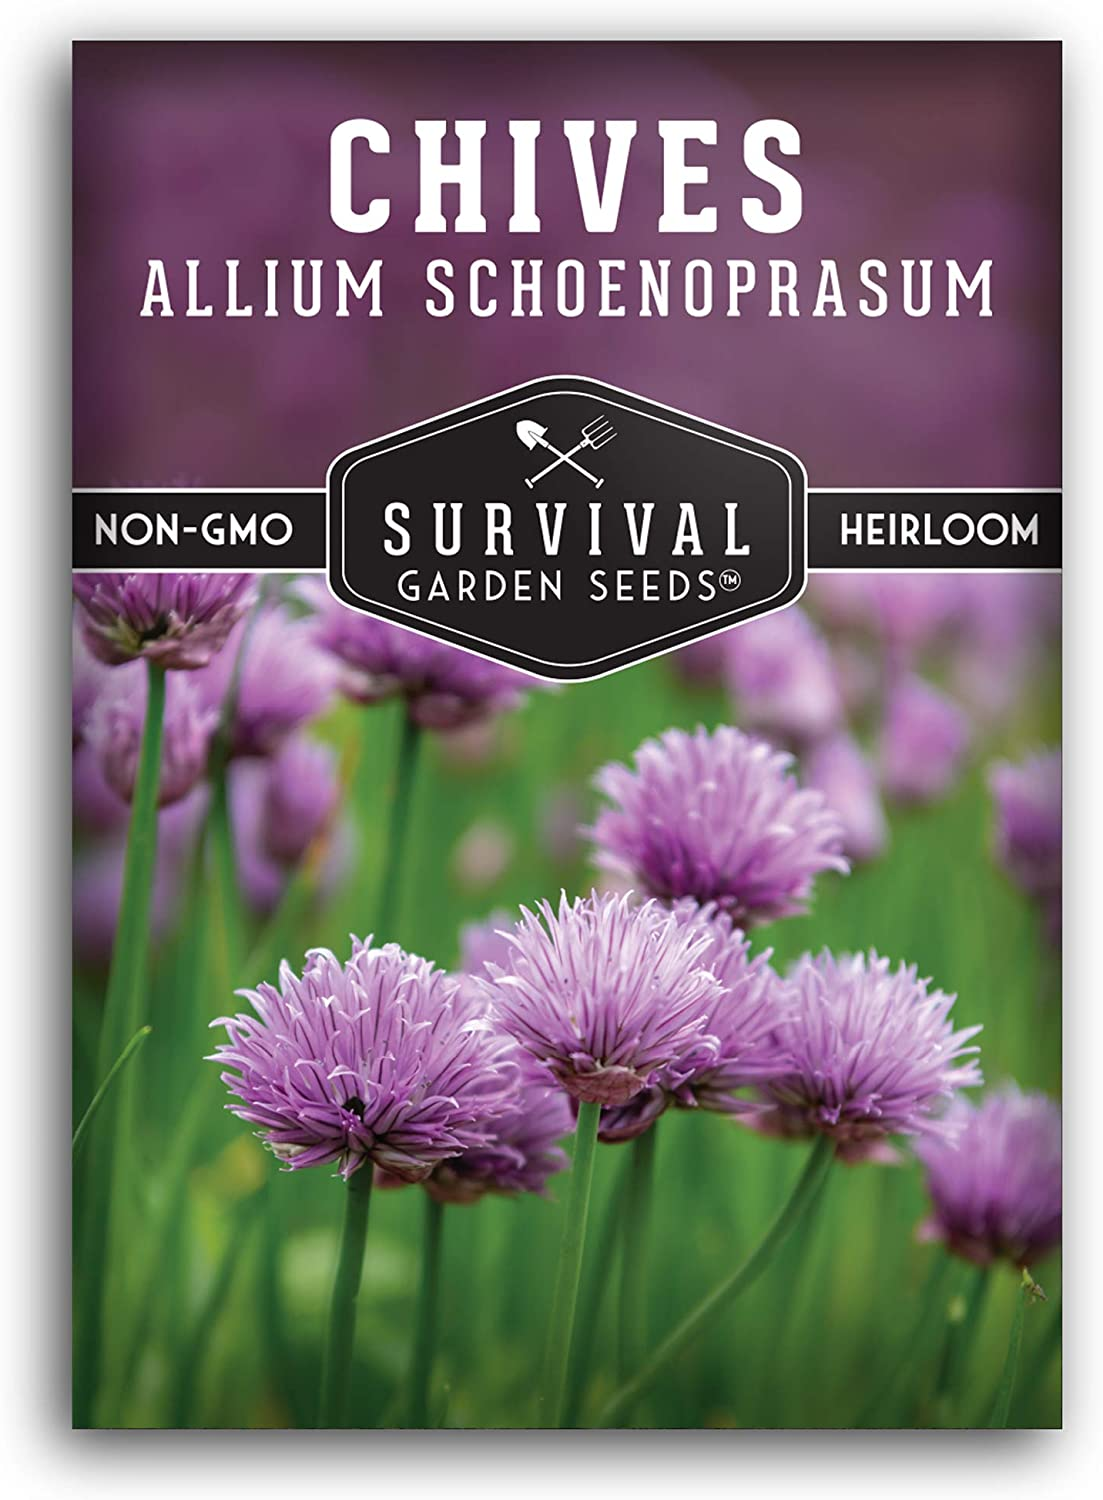 Survival Garden Seeds - Common Chives Seed for Planting - Packet with Instructions to Plant and Grow in Your Home Vegetable Garden - Non-GMO Heirloom Variety